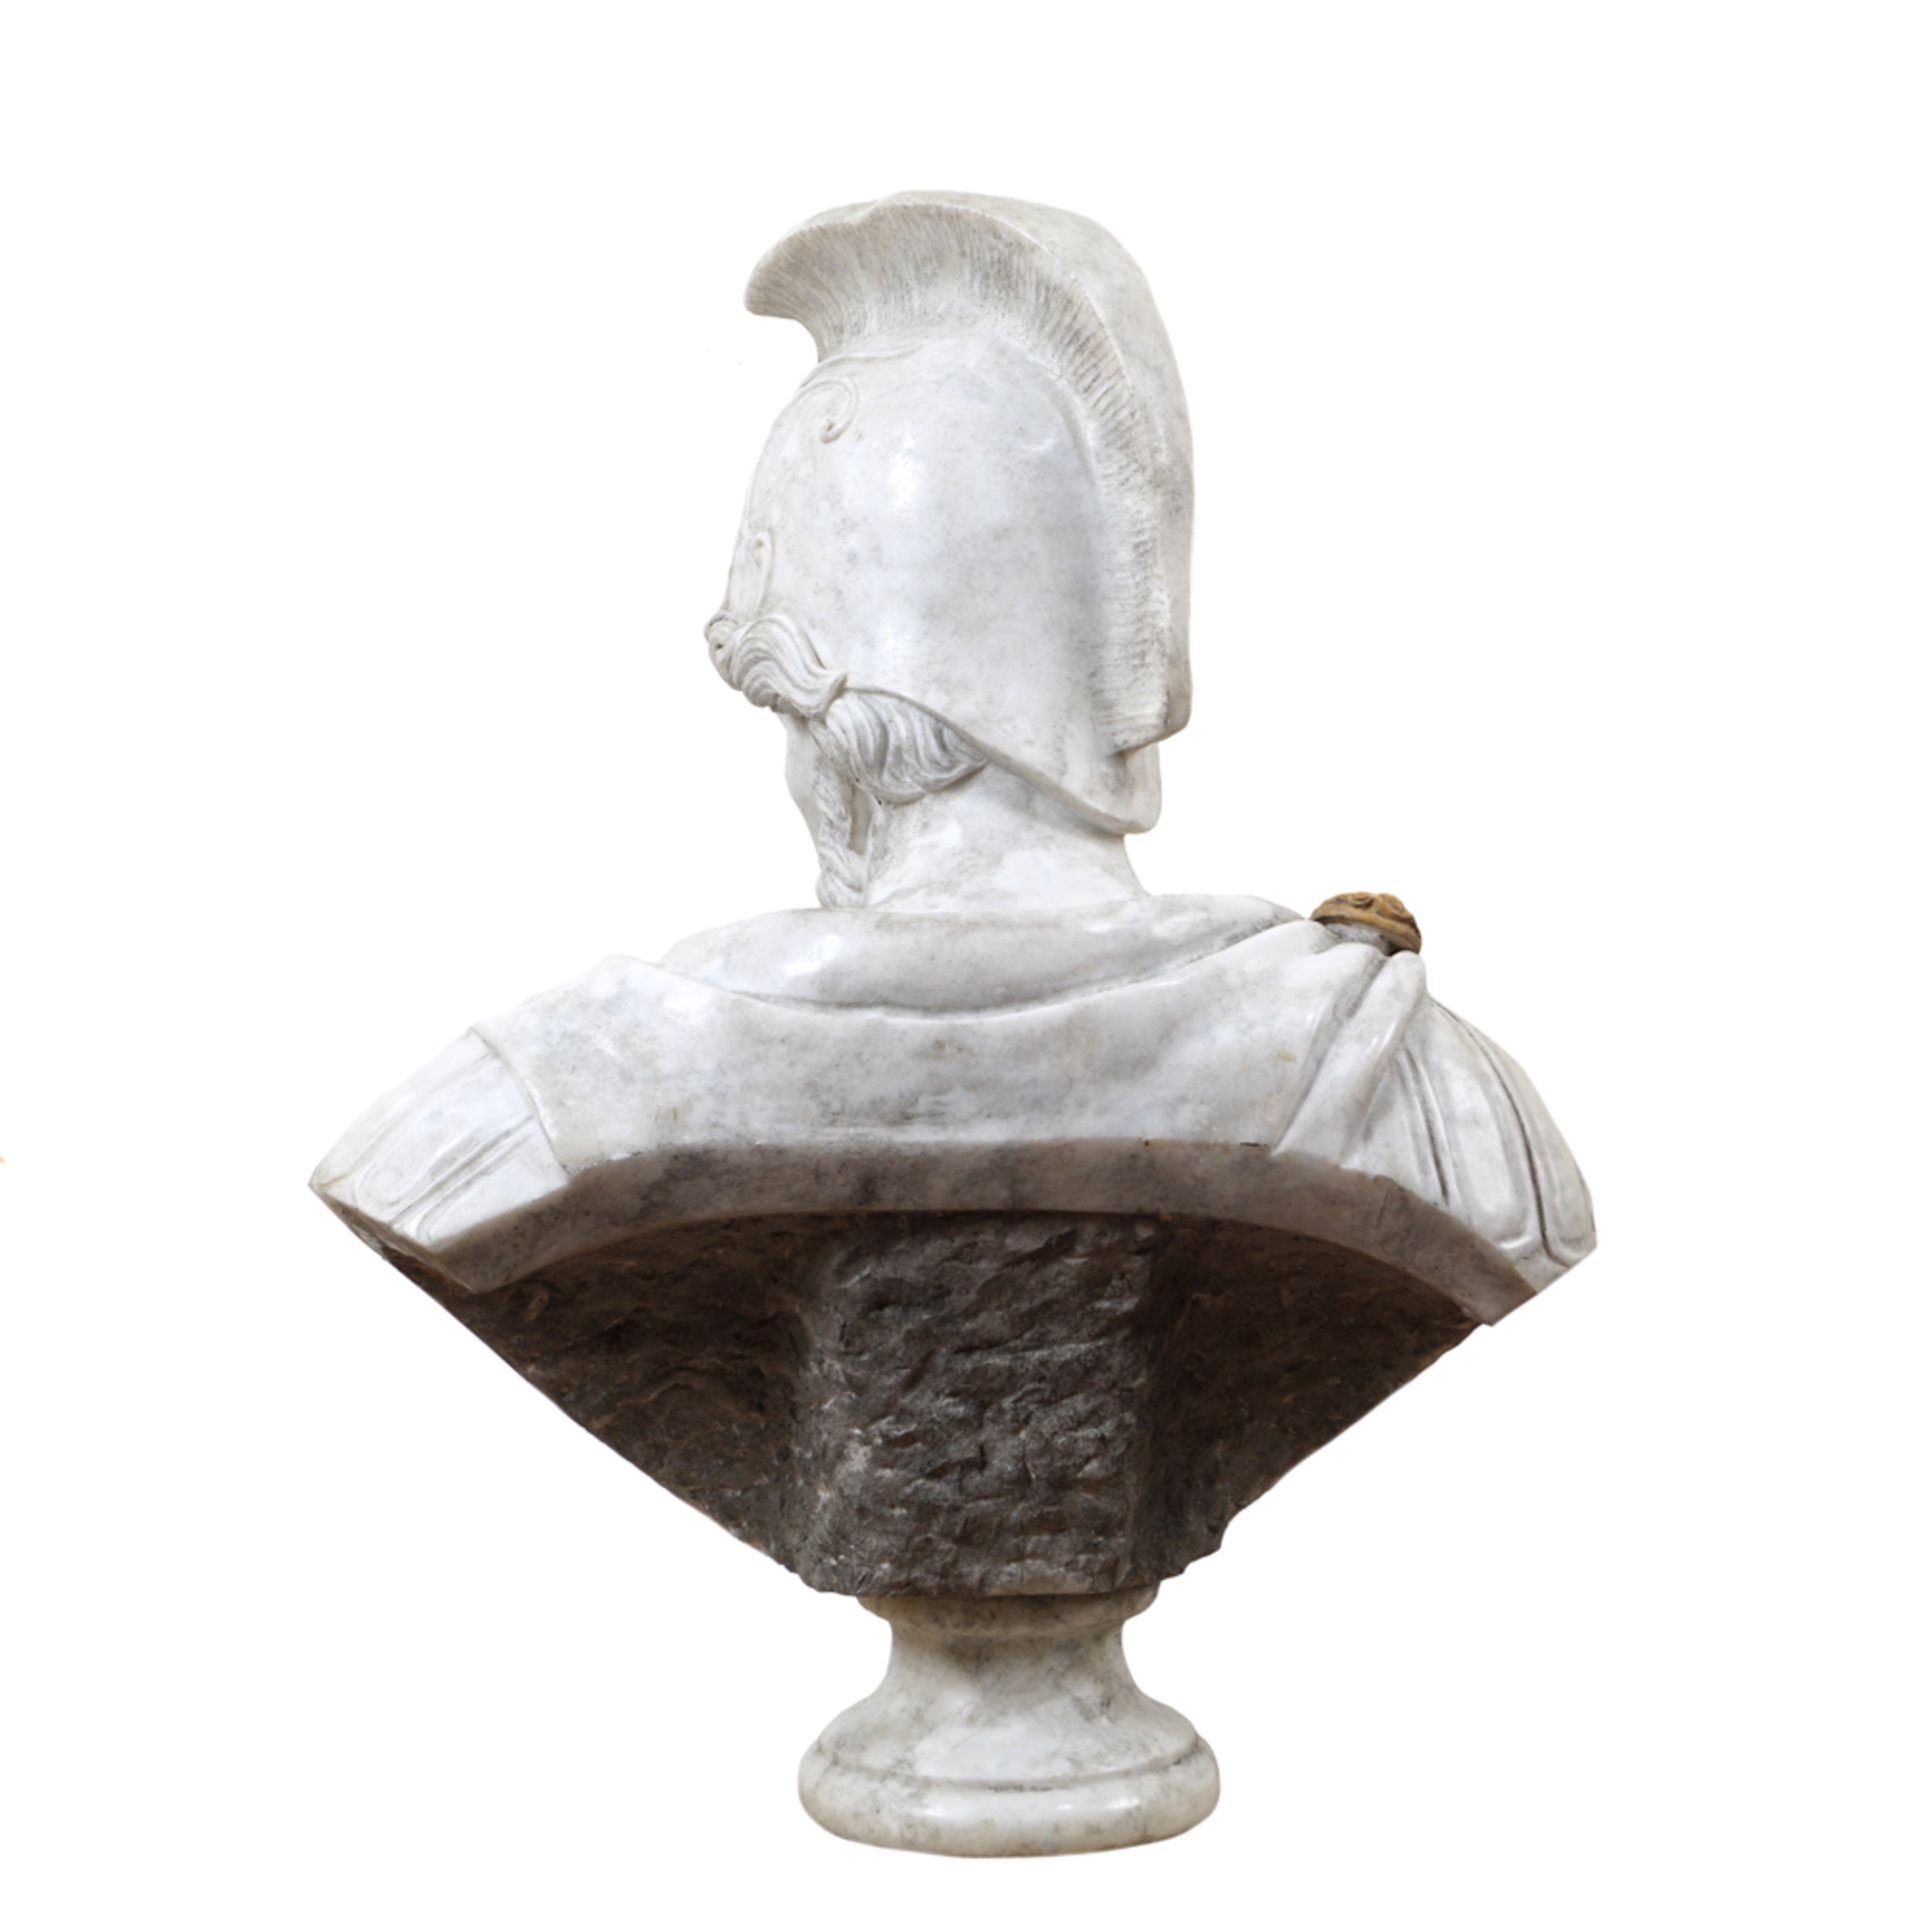 White, red and Yellow Siena marble bust 20th century 82x62x36 cm. - Image 3 of 3